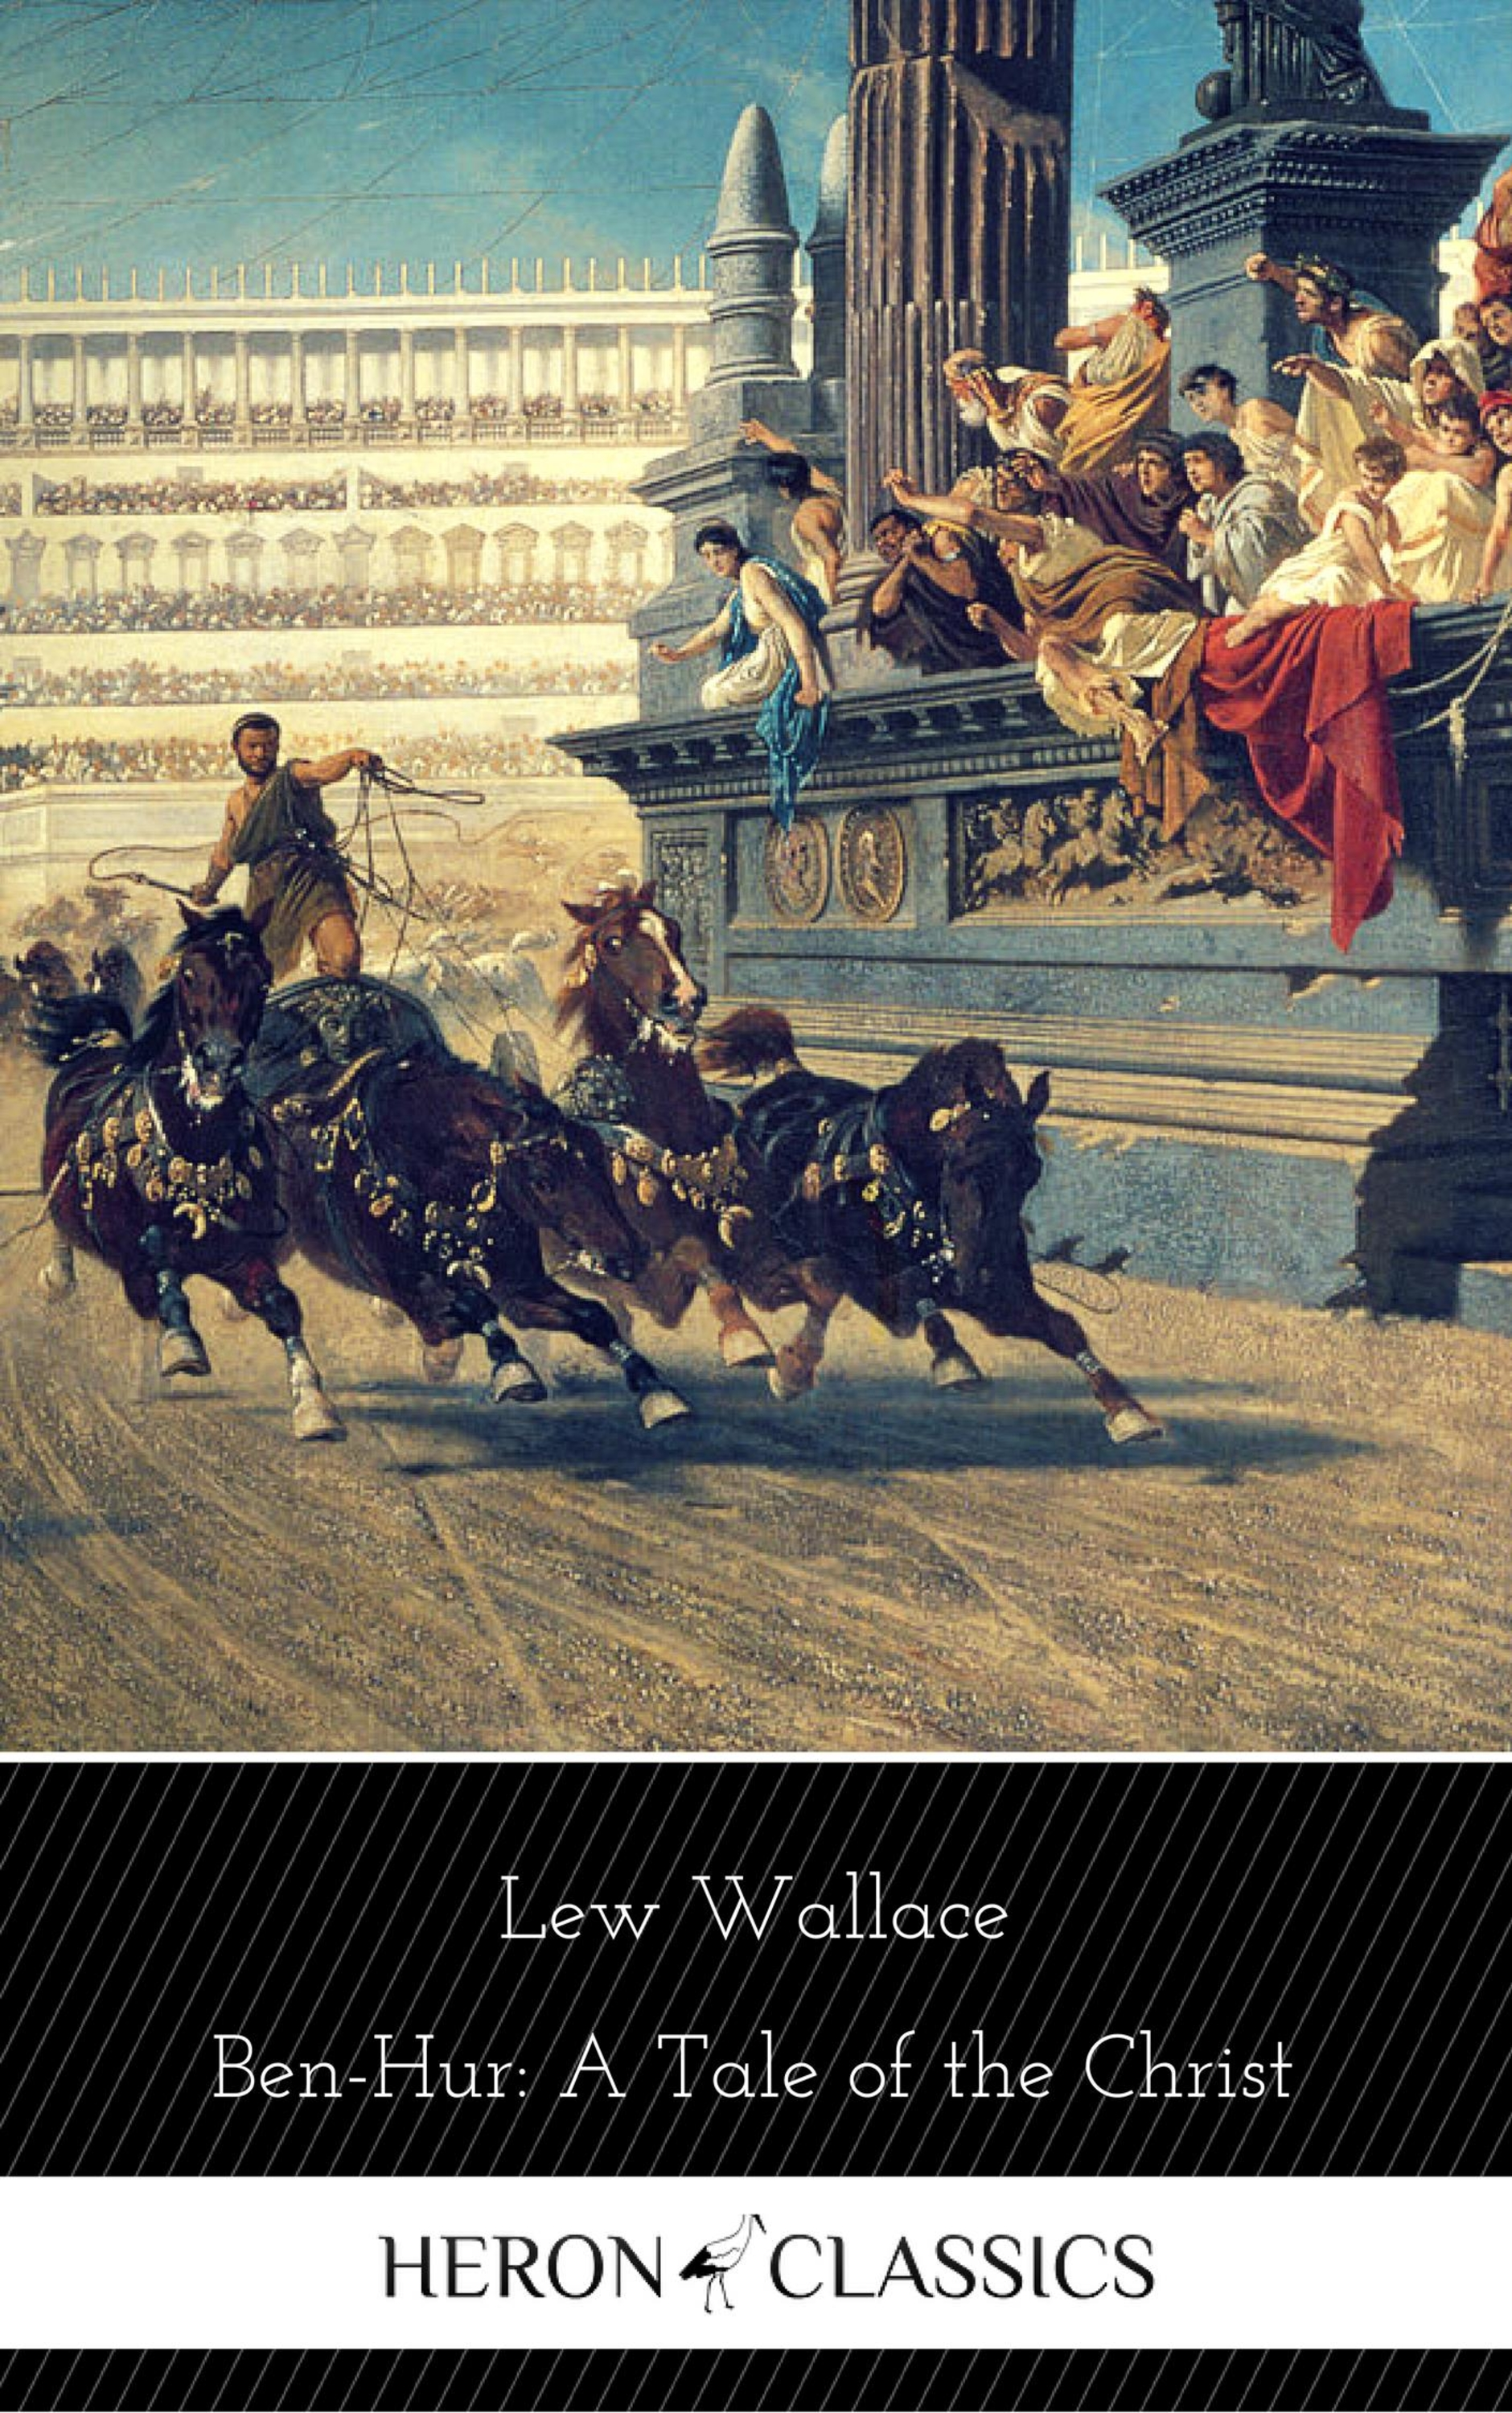 Lew Wallace Ben-Hur: A Tale of the Christ (Heron Classics)